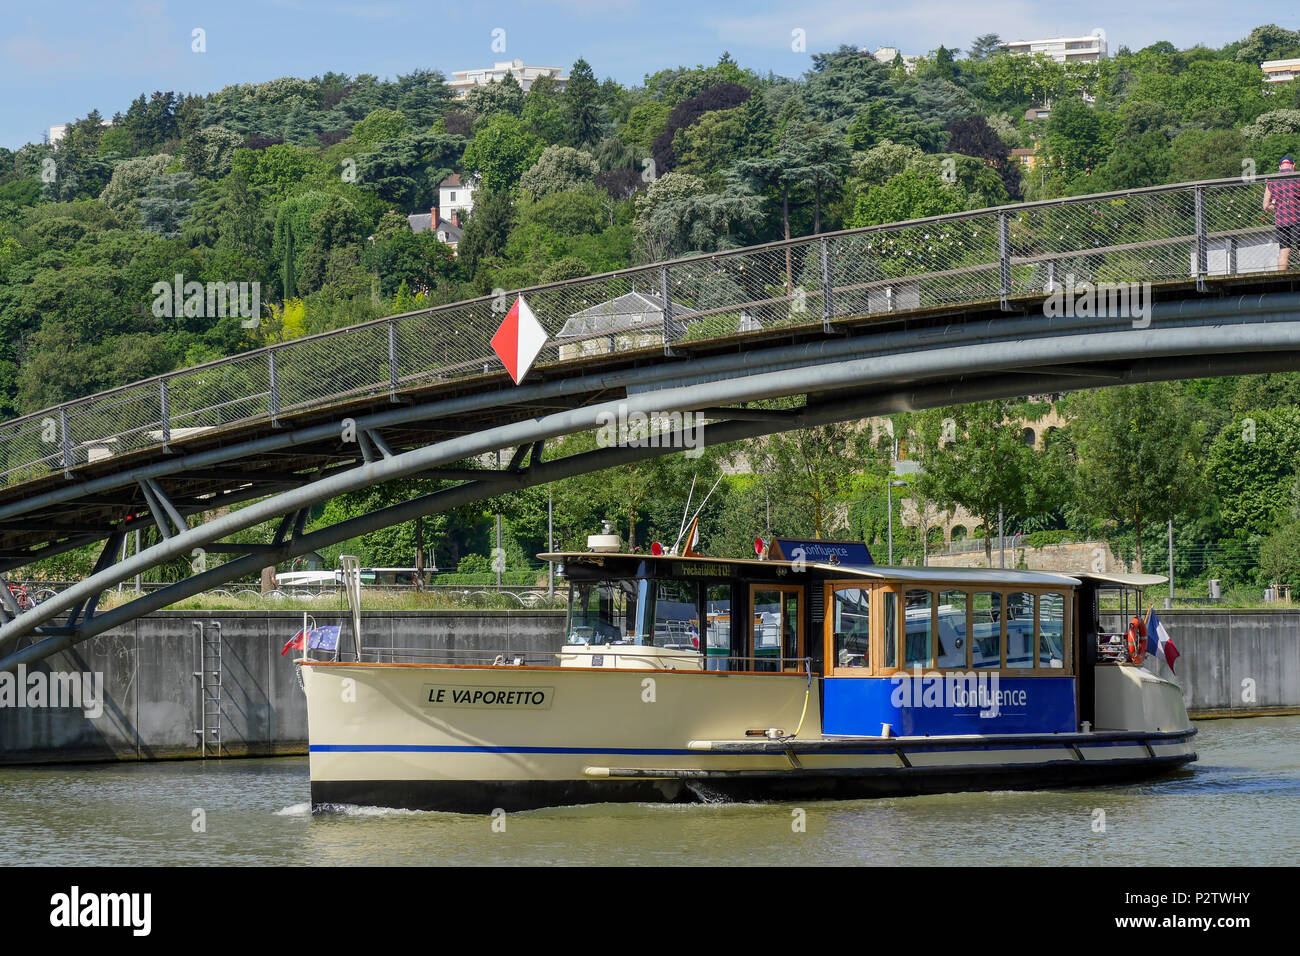 Vaporetto river boat, Confluence district, Lyon, France - Stock Image